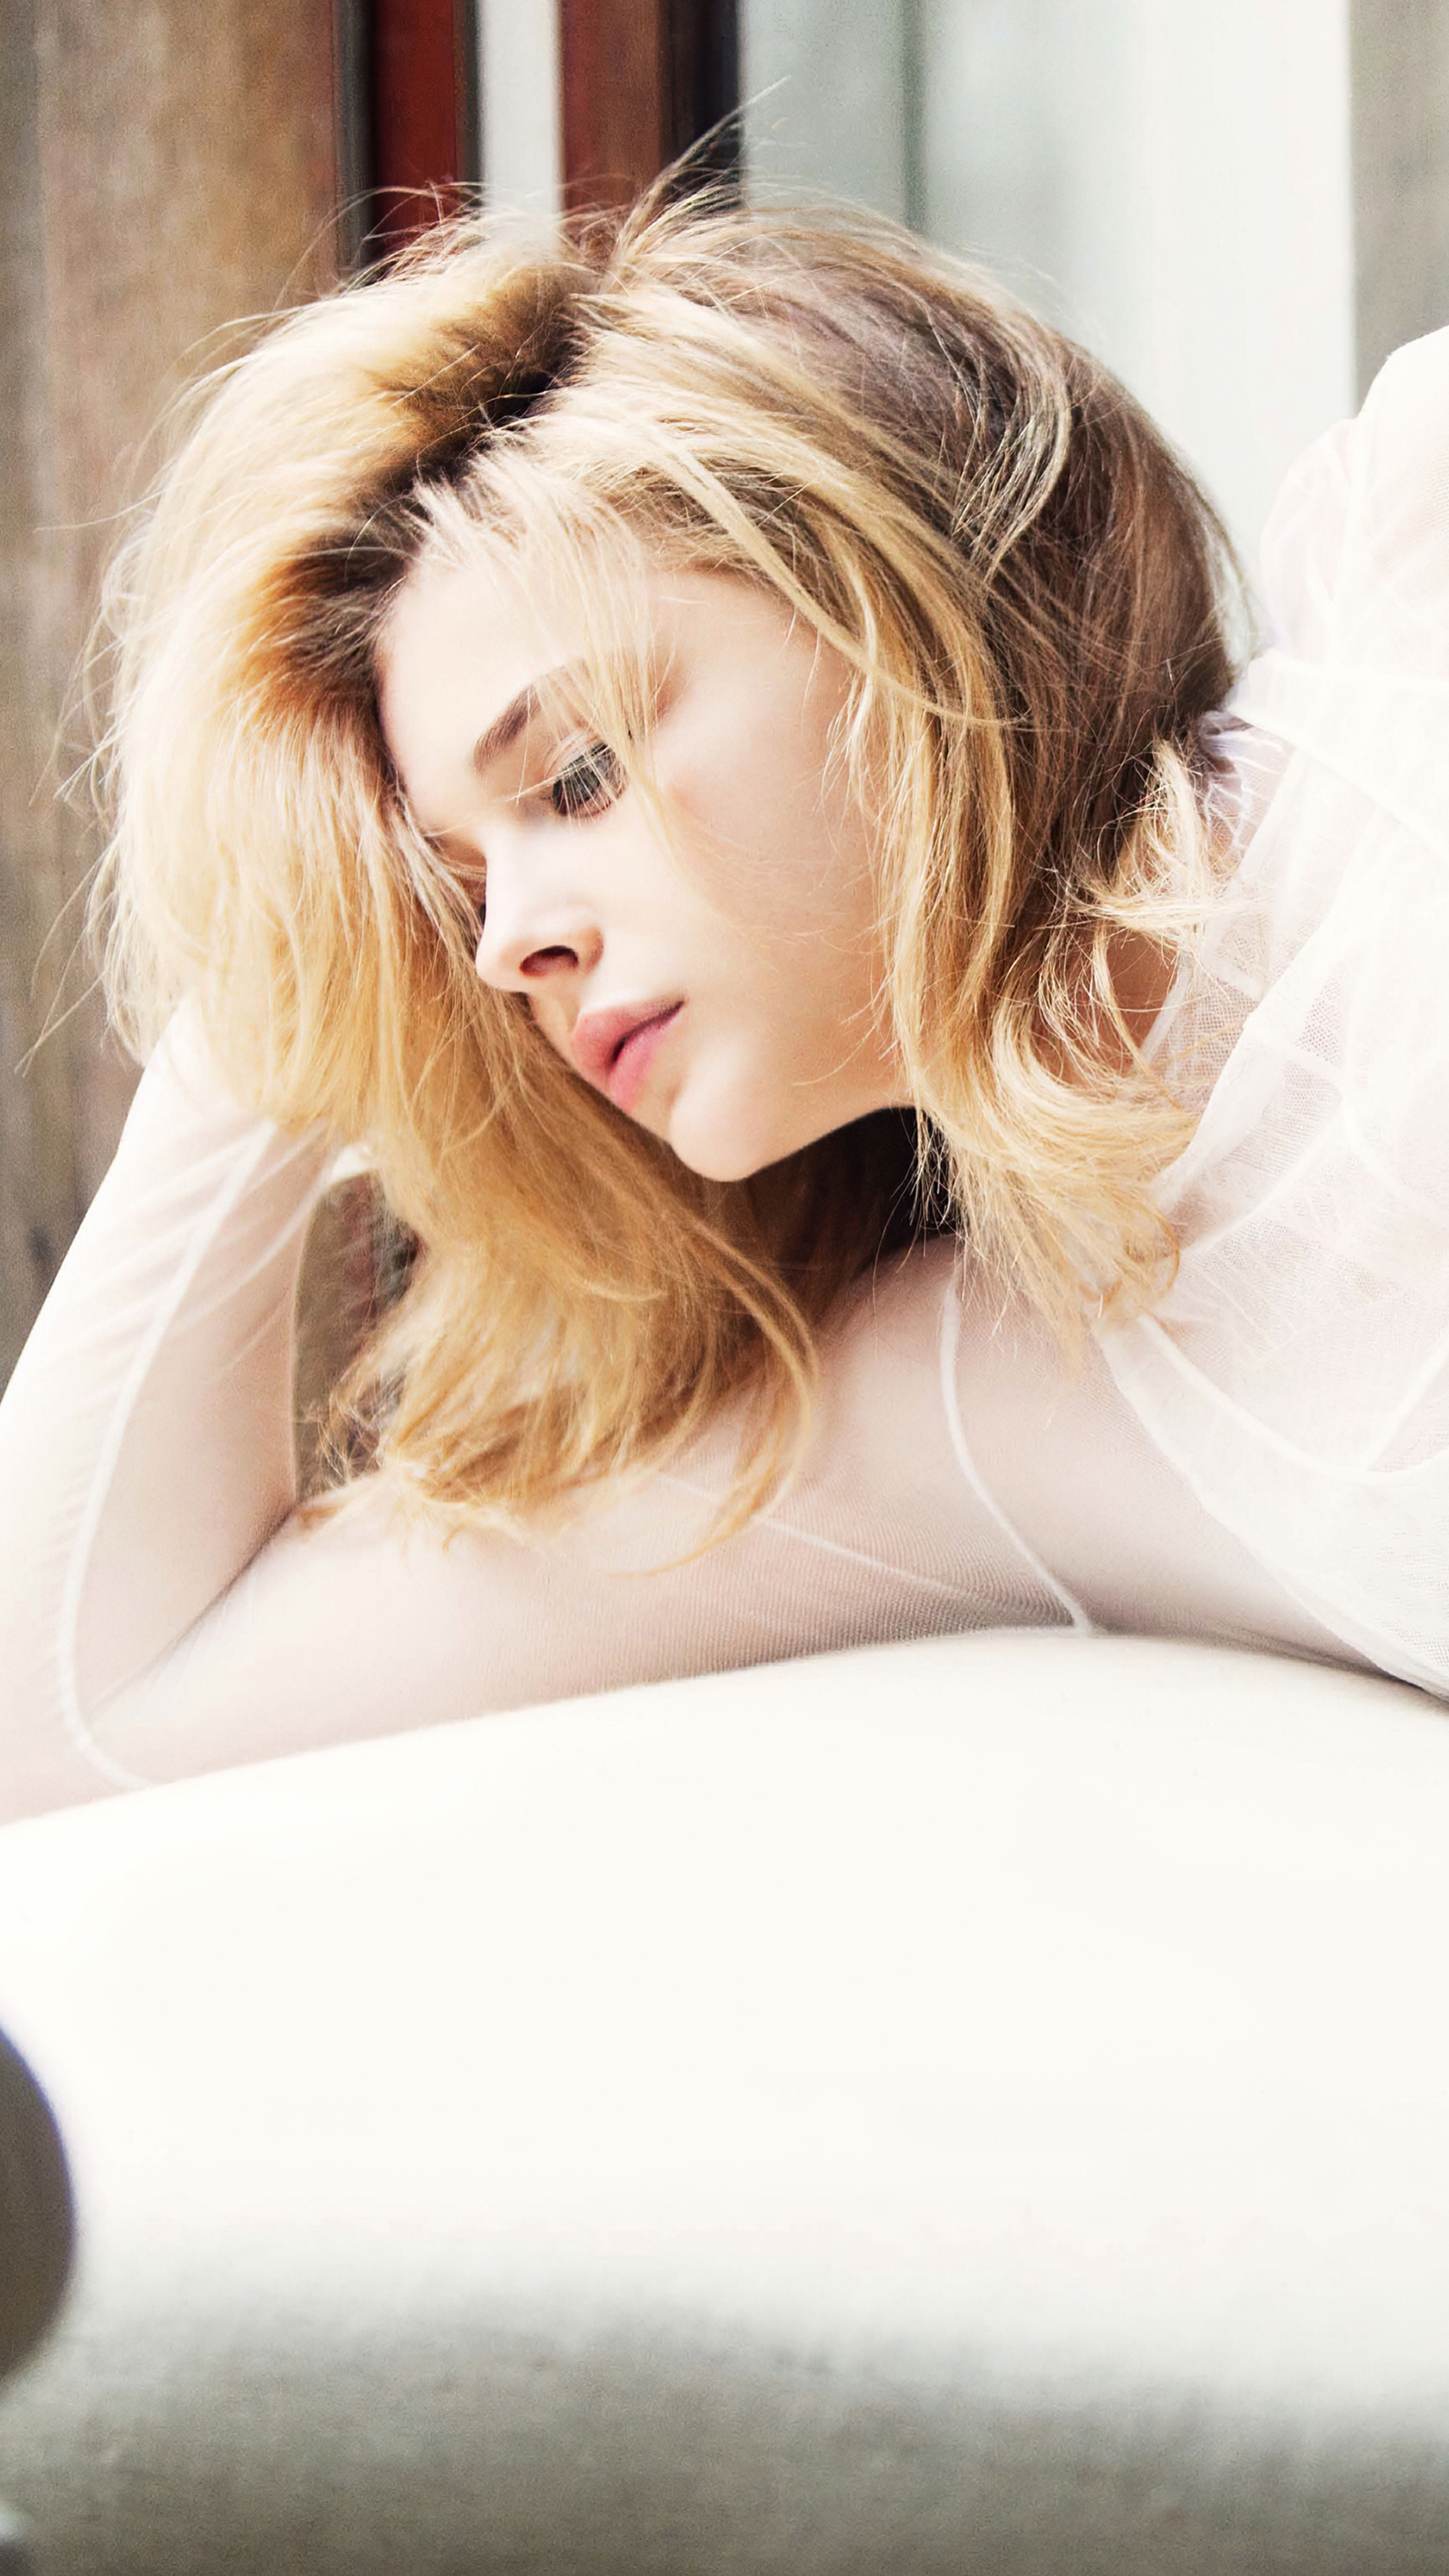 chloe-grace-marie-claire-photoshoot-4k-mv.jpg